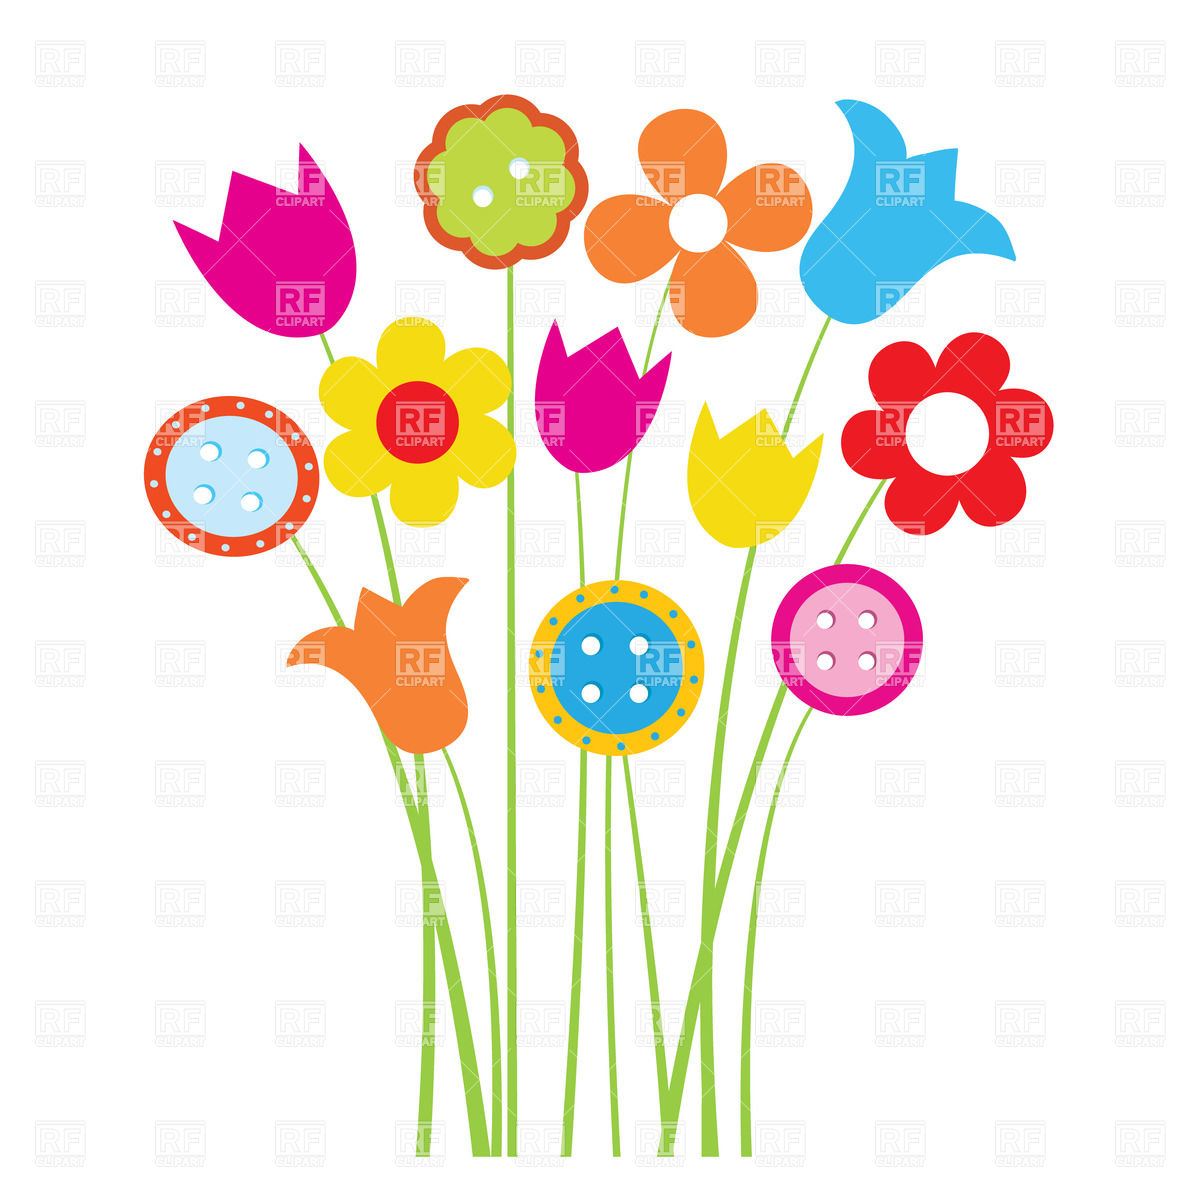 Wallpaper You Can Download Flower Cartoon Clip Art Desktop Wallpaper